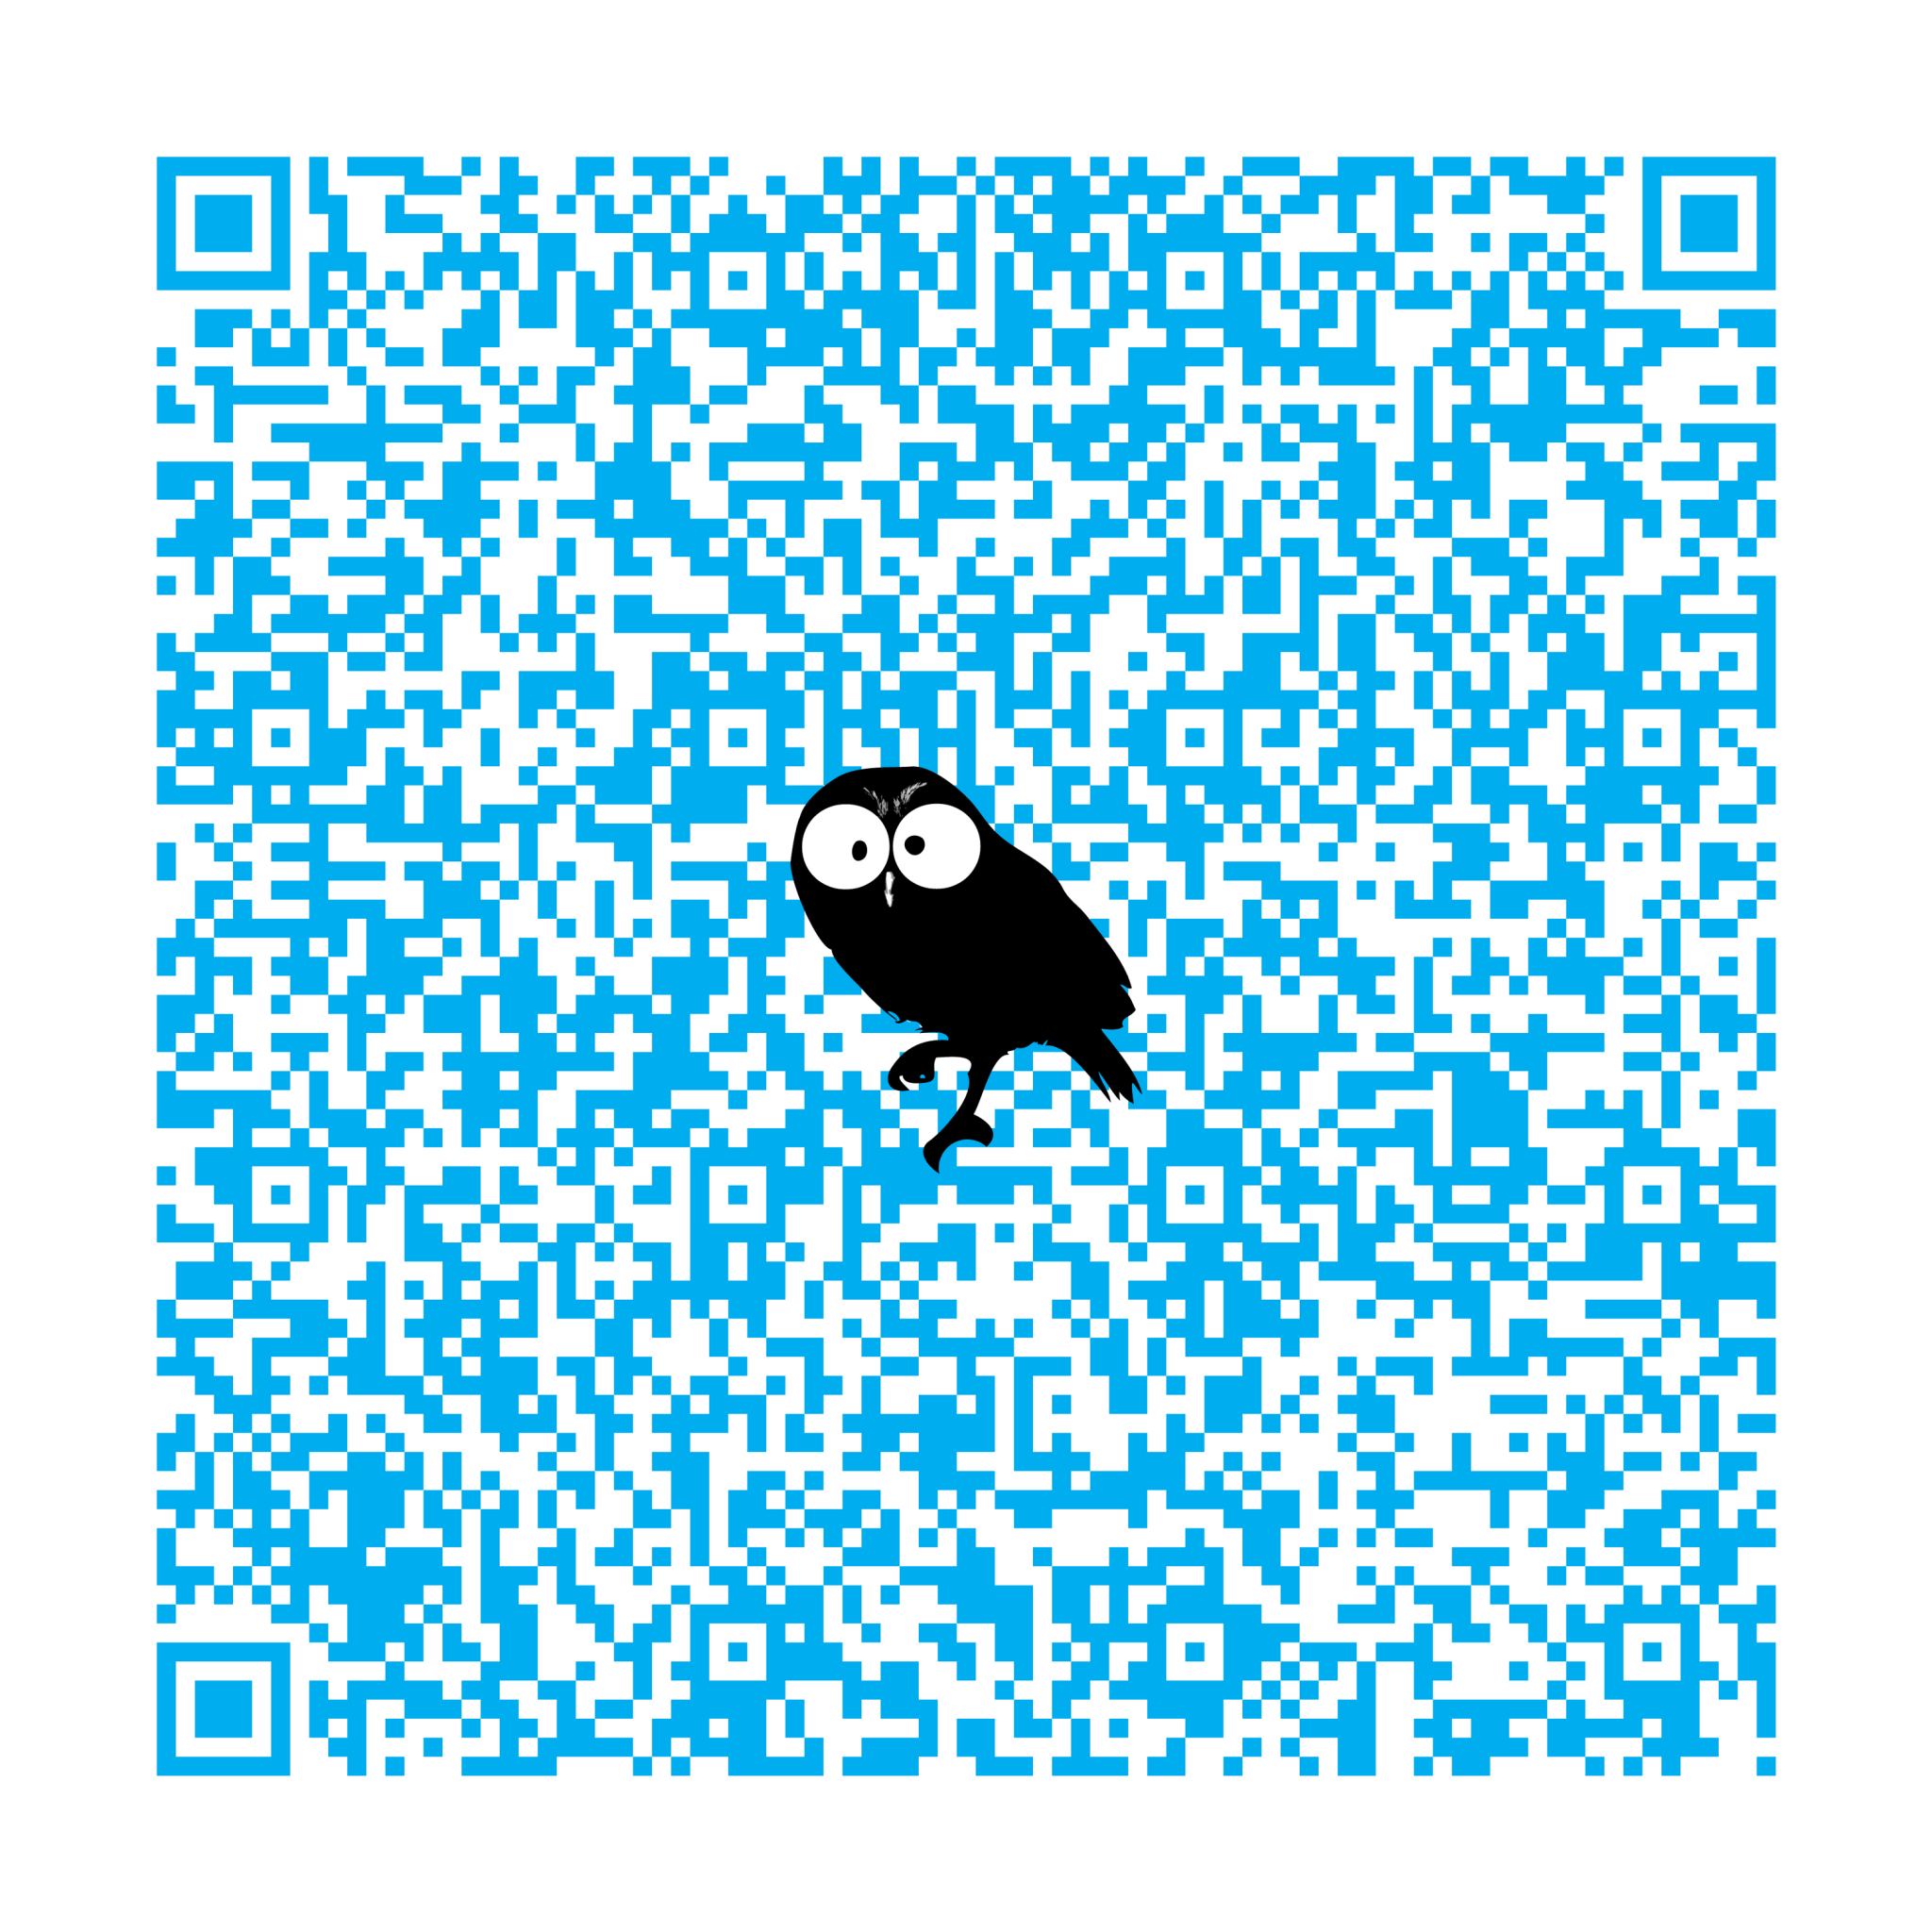 Scan this bad boy to instantly plug contact info into your smartphone. Go on, try it.